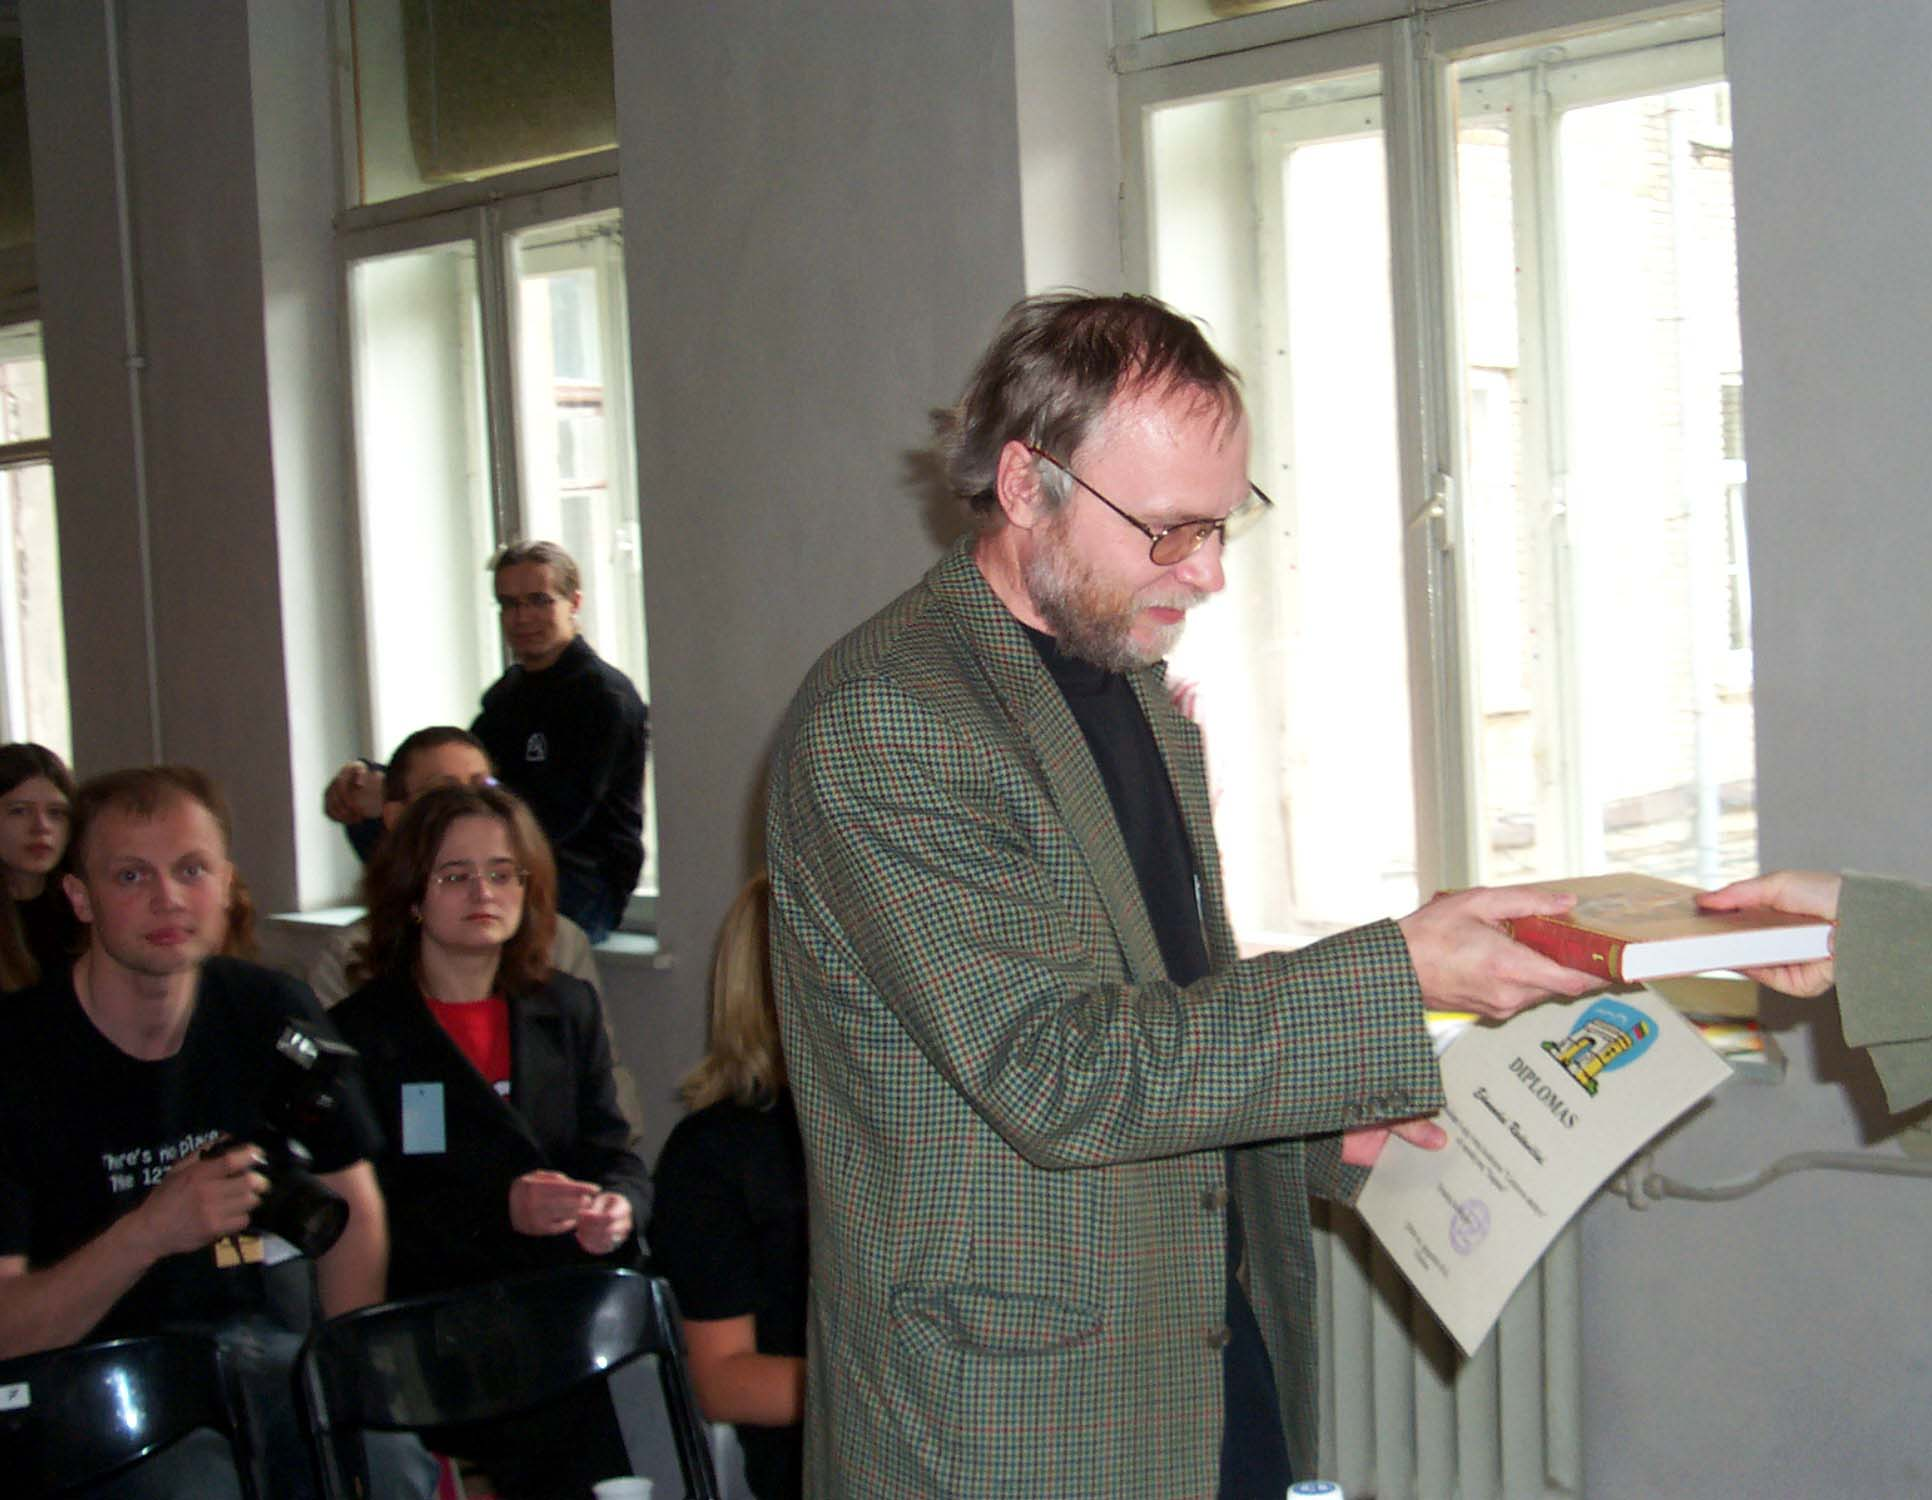 """Zumis receives his award as the winner of the short story contest """"The Futures of Lithuania"""" at the Lituanicon 2004, a science fiction convention in Vilnius, Lithuania, May 2004"""